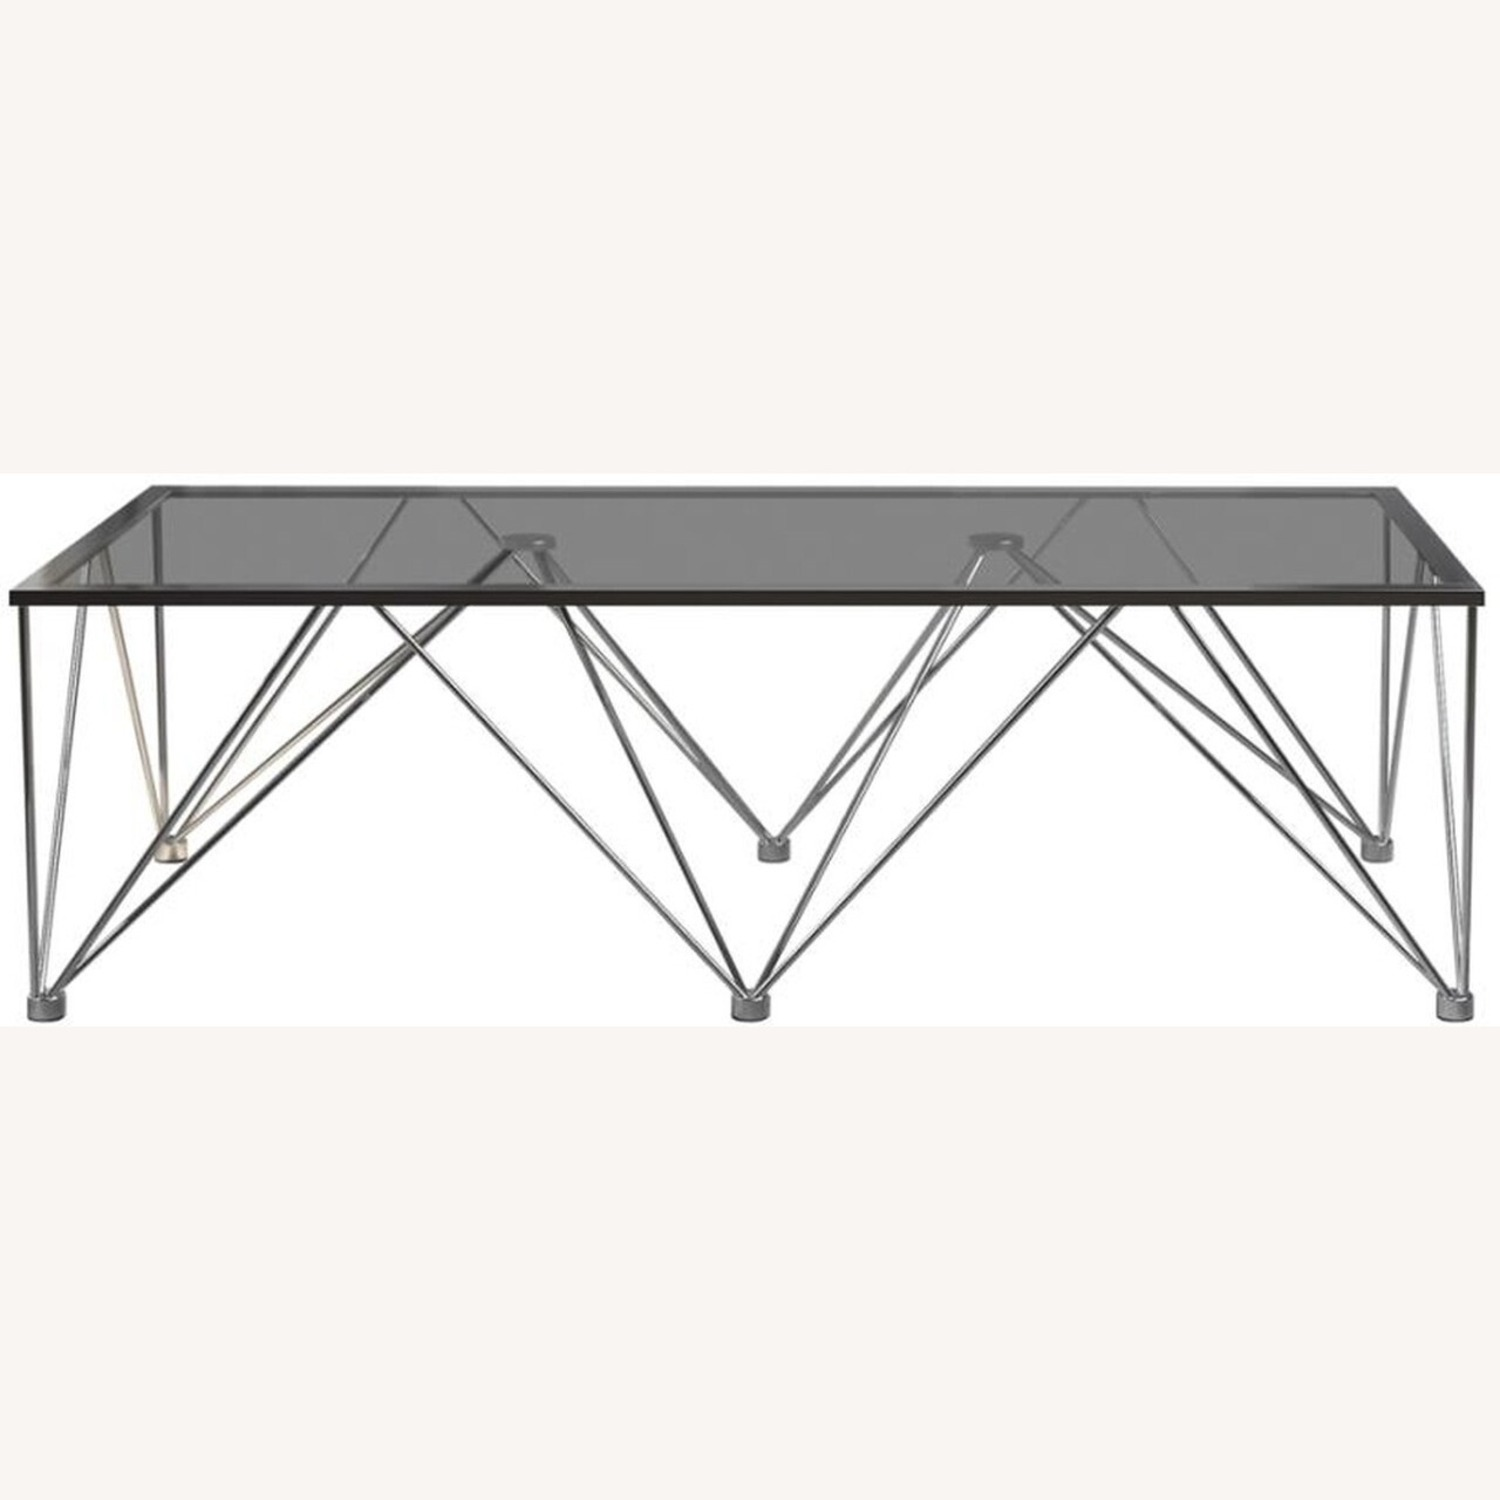 Modern Square Coffee Table In Grey Glass Top - image-1